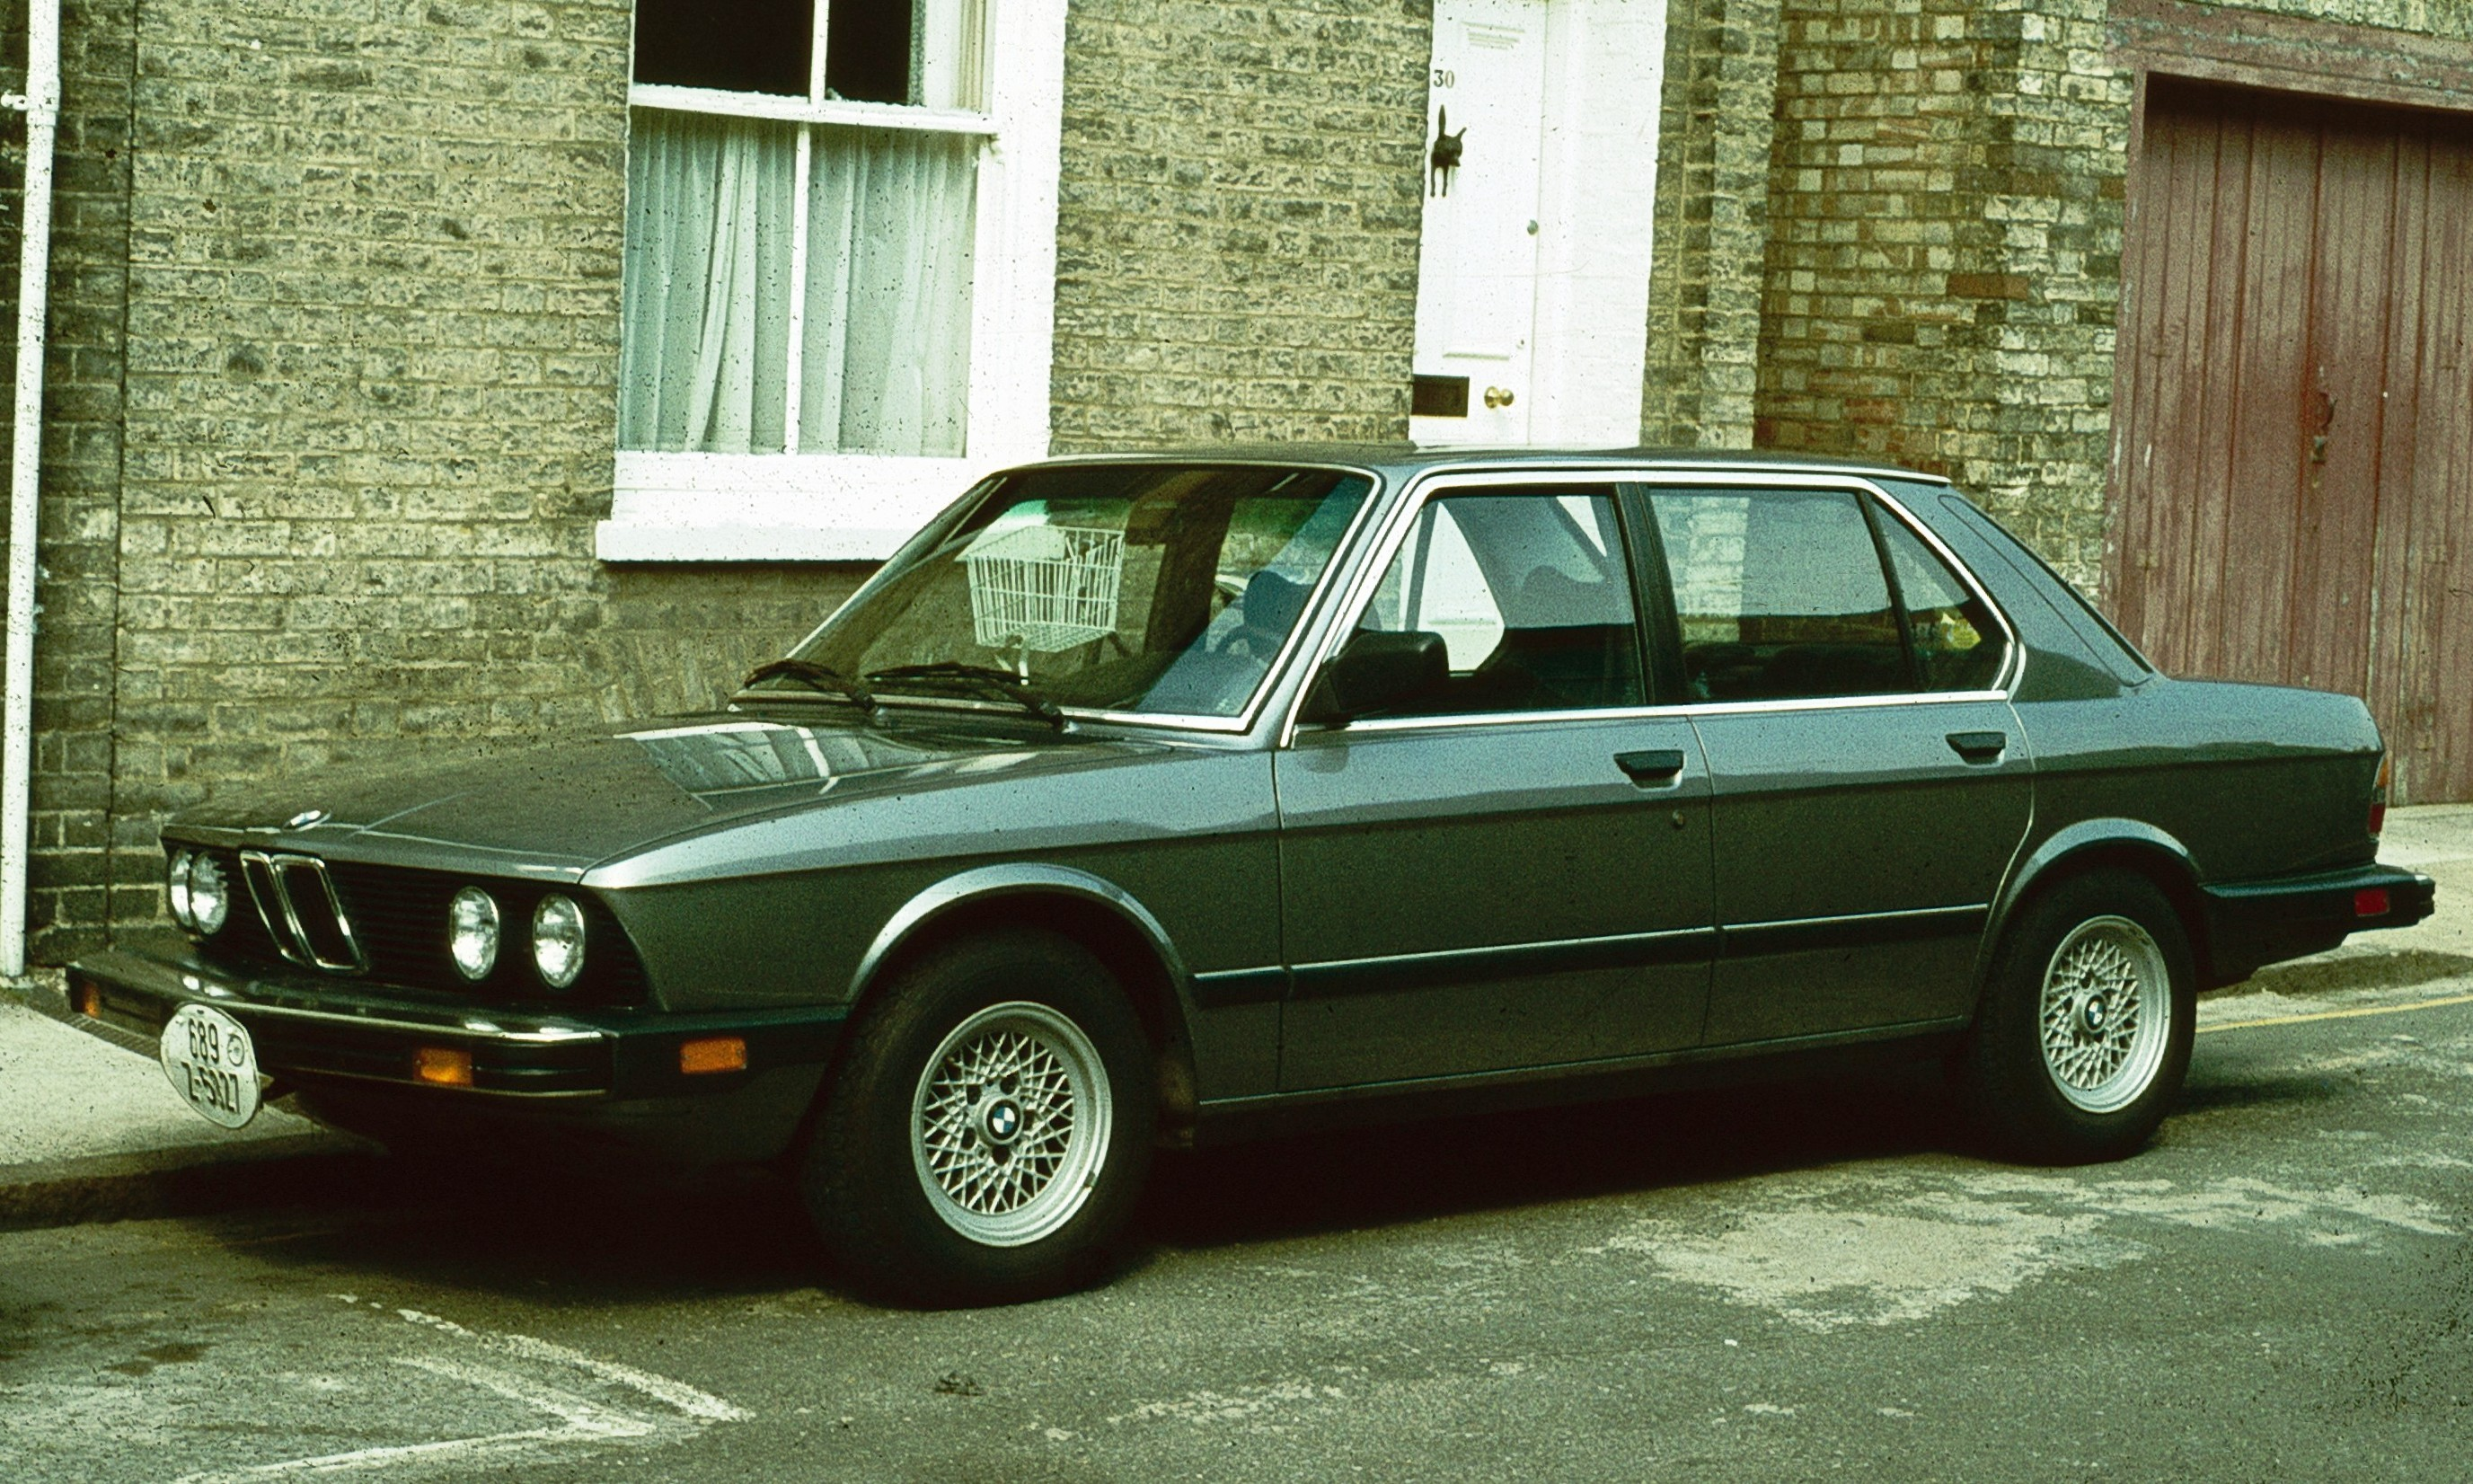 File:BMW 528 US Spec Cambridge 1980.jpg